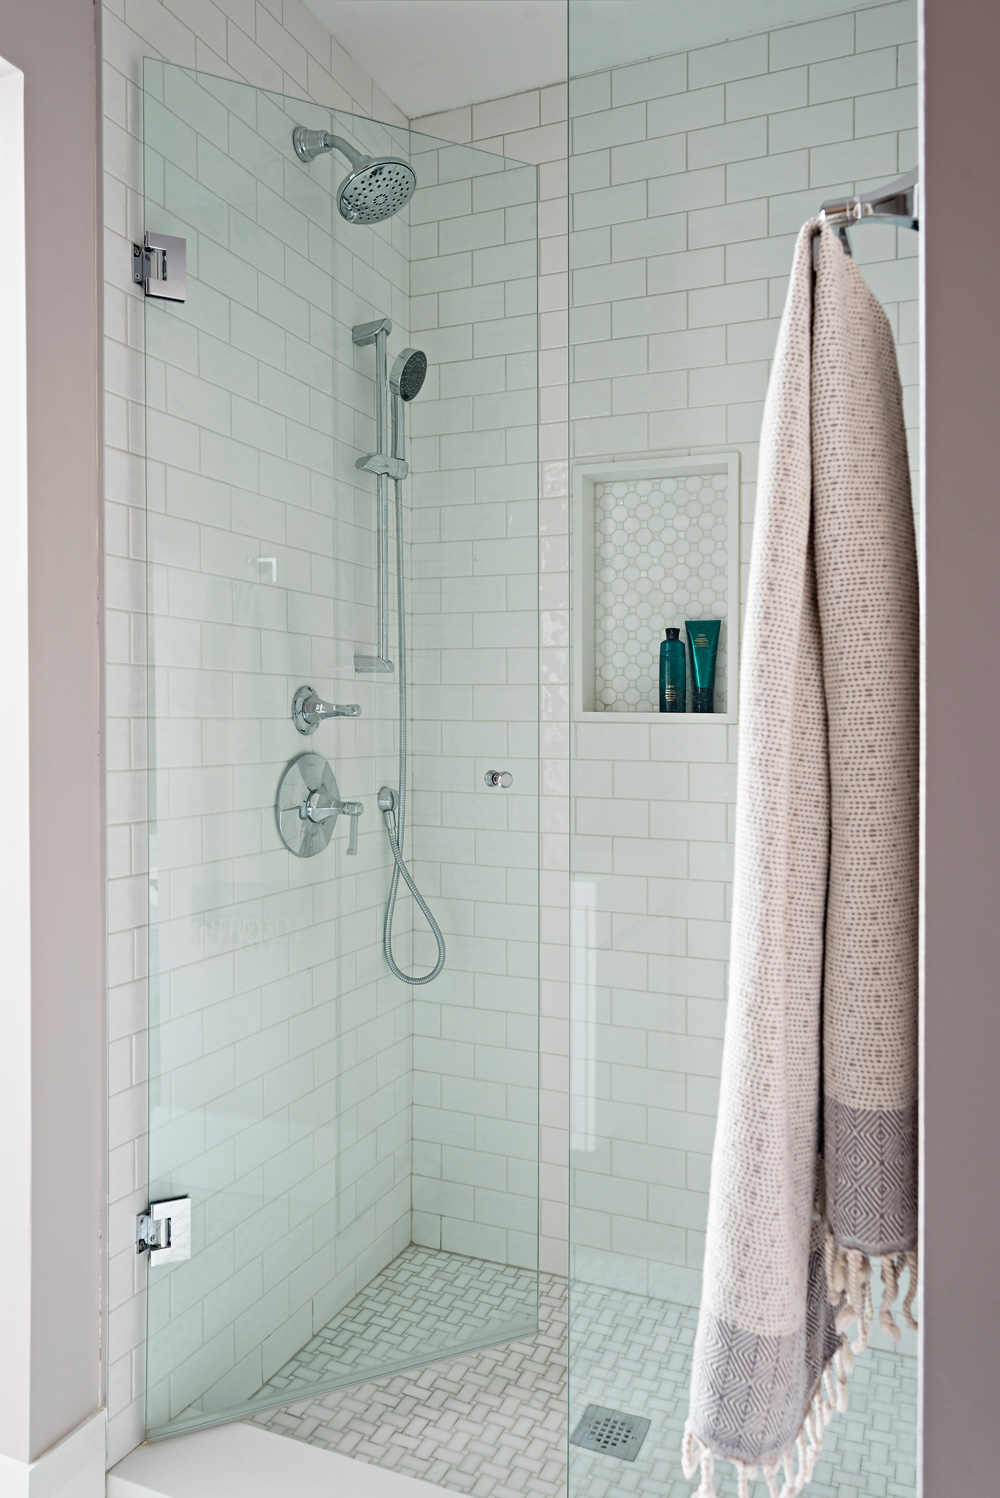 Master bathroom shower with mosaic tiles